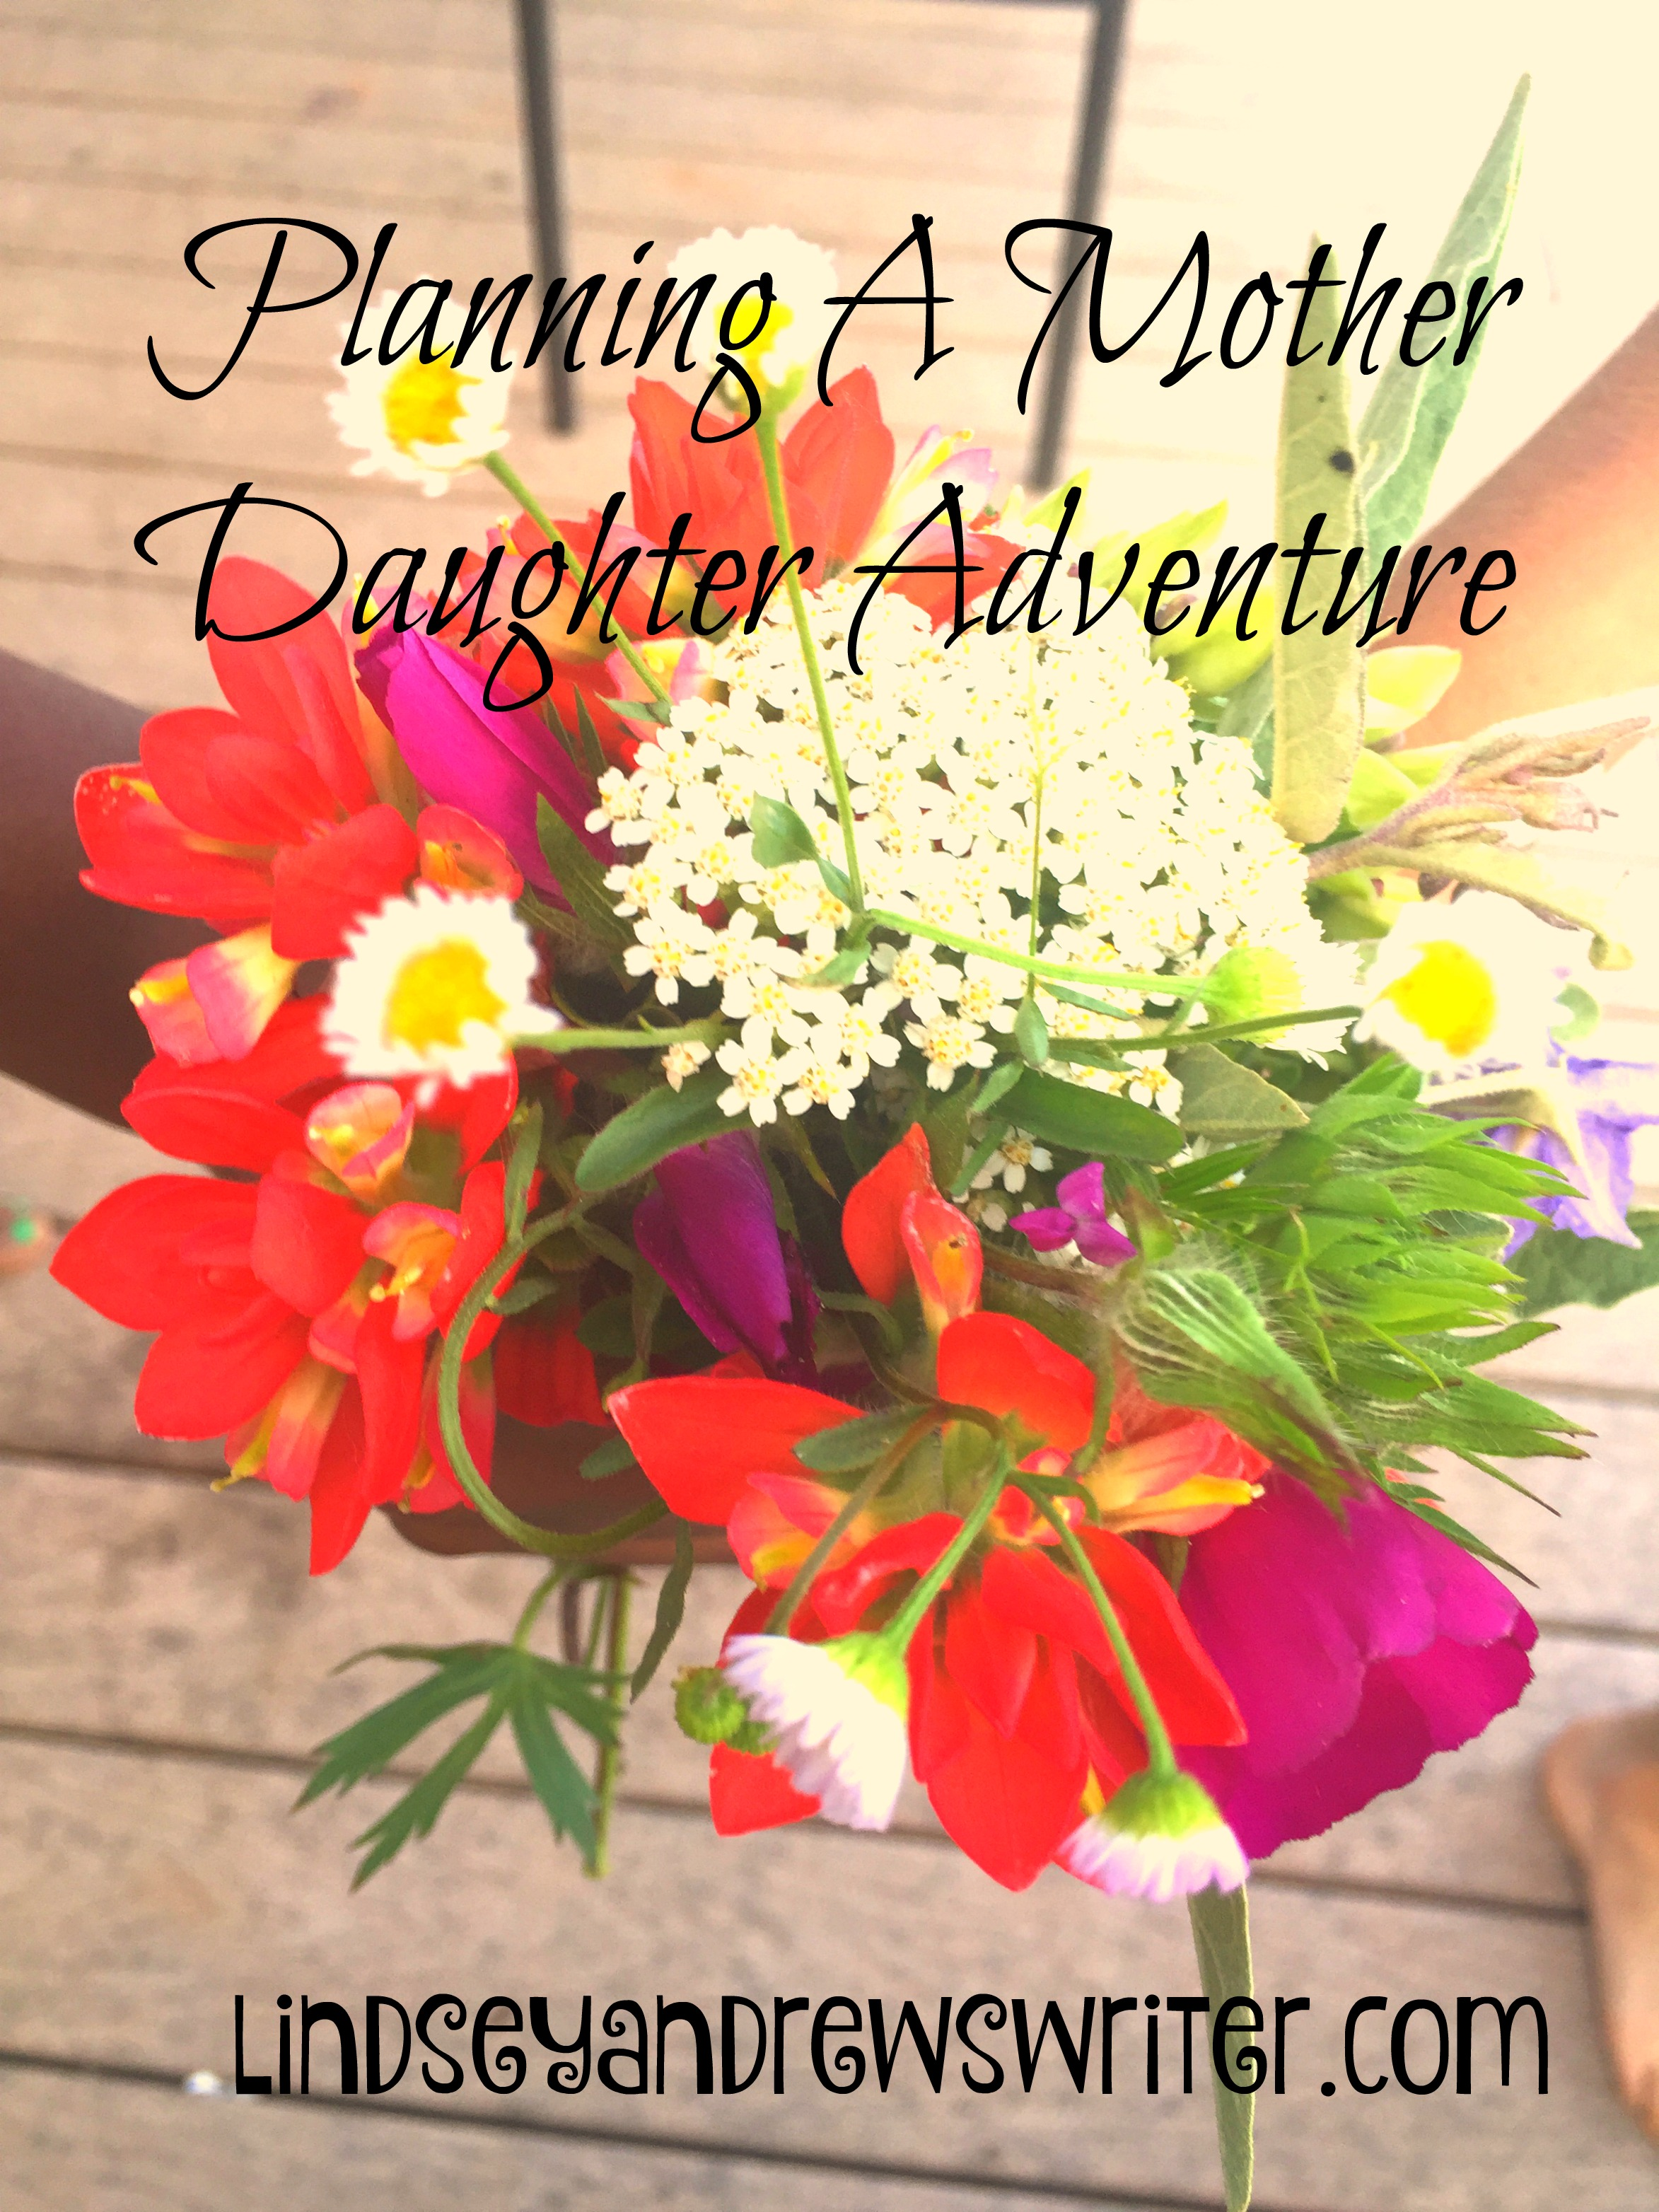 Planning A Mother Daughter Adventure